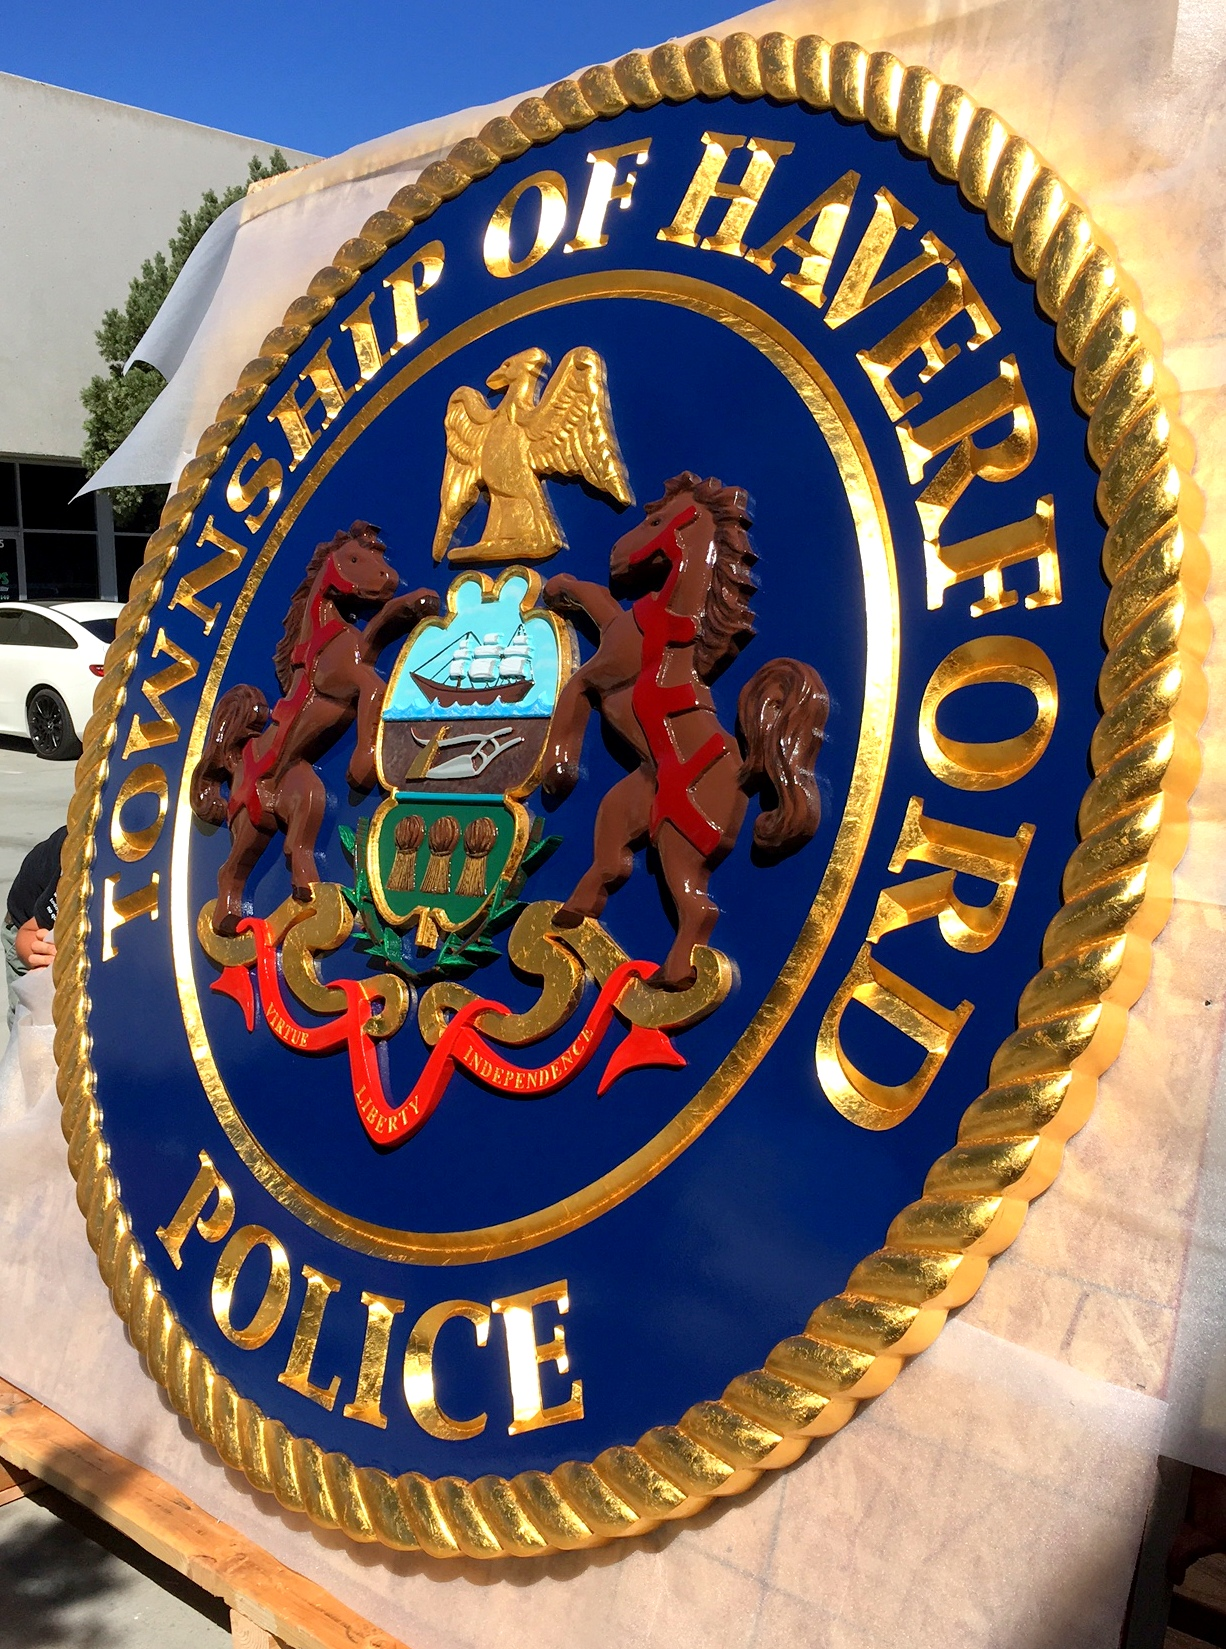 PP-3020 - Large Carved  Plaque of the Seal of the Township of Haverford Police, Pennsylvania,  Artist Painted with Gold Leaf Gilding